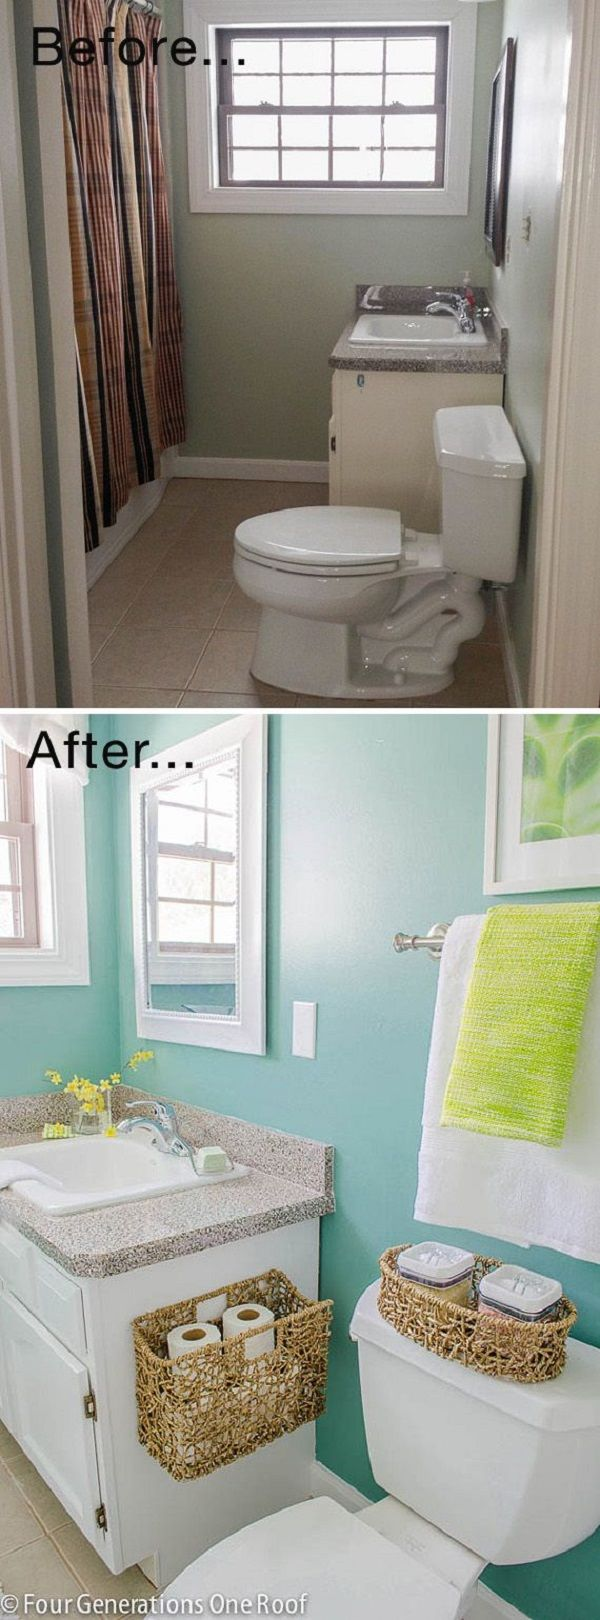 Home Hacks: 10 Before & After Bathroom Tips | thegoodstuff